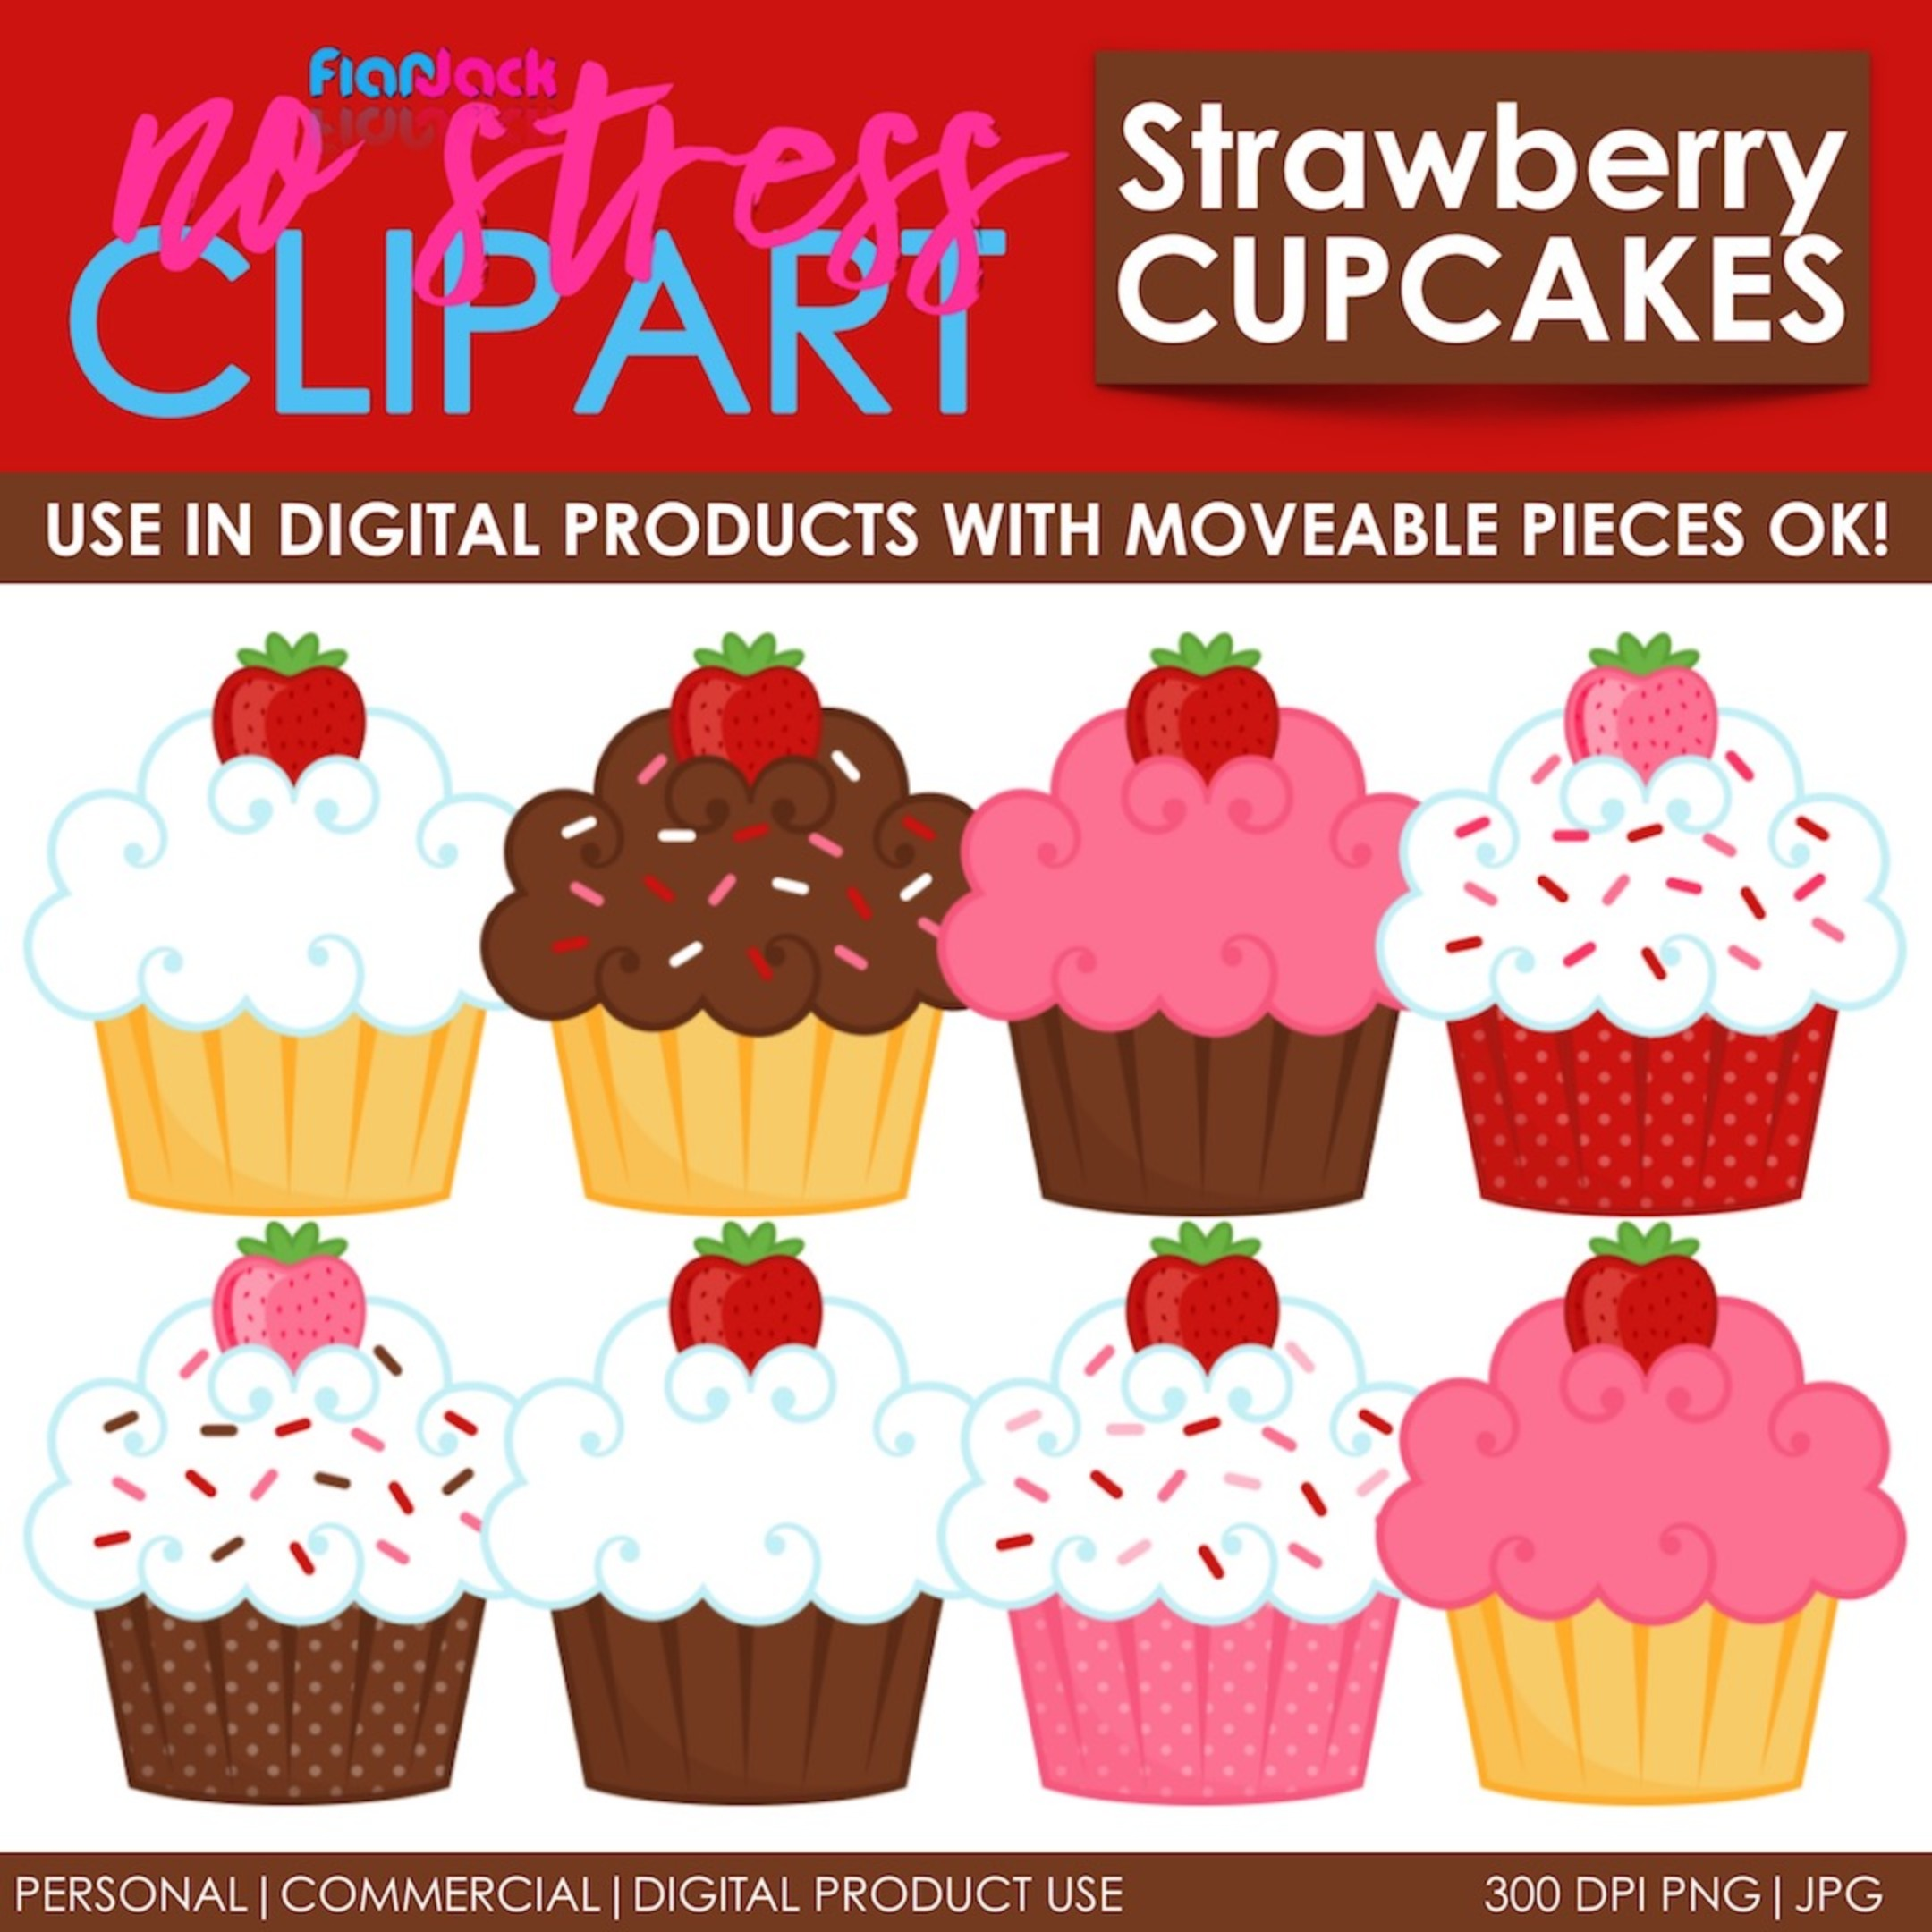 Strawberry Cupcakes With Sprinkles!